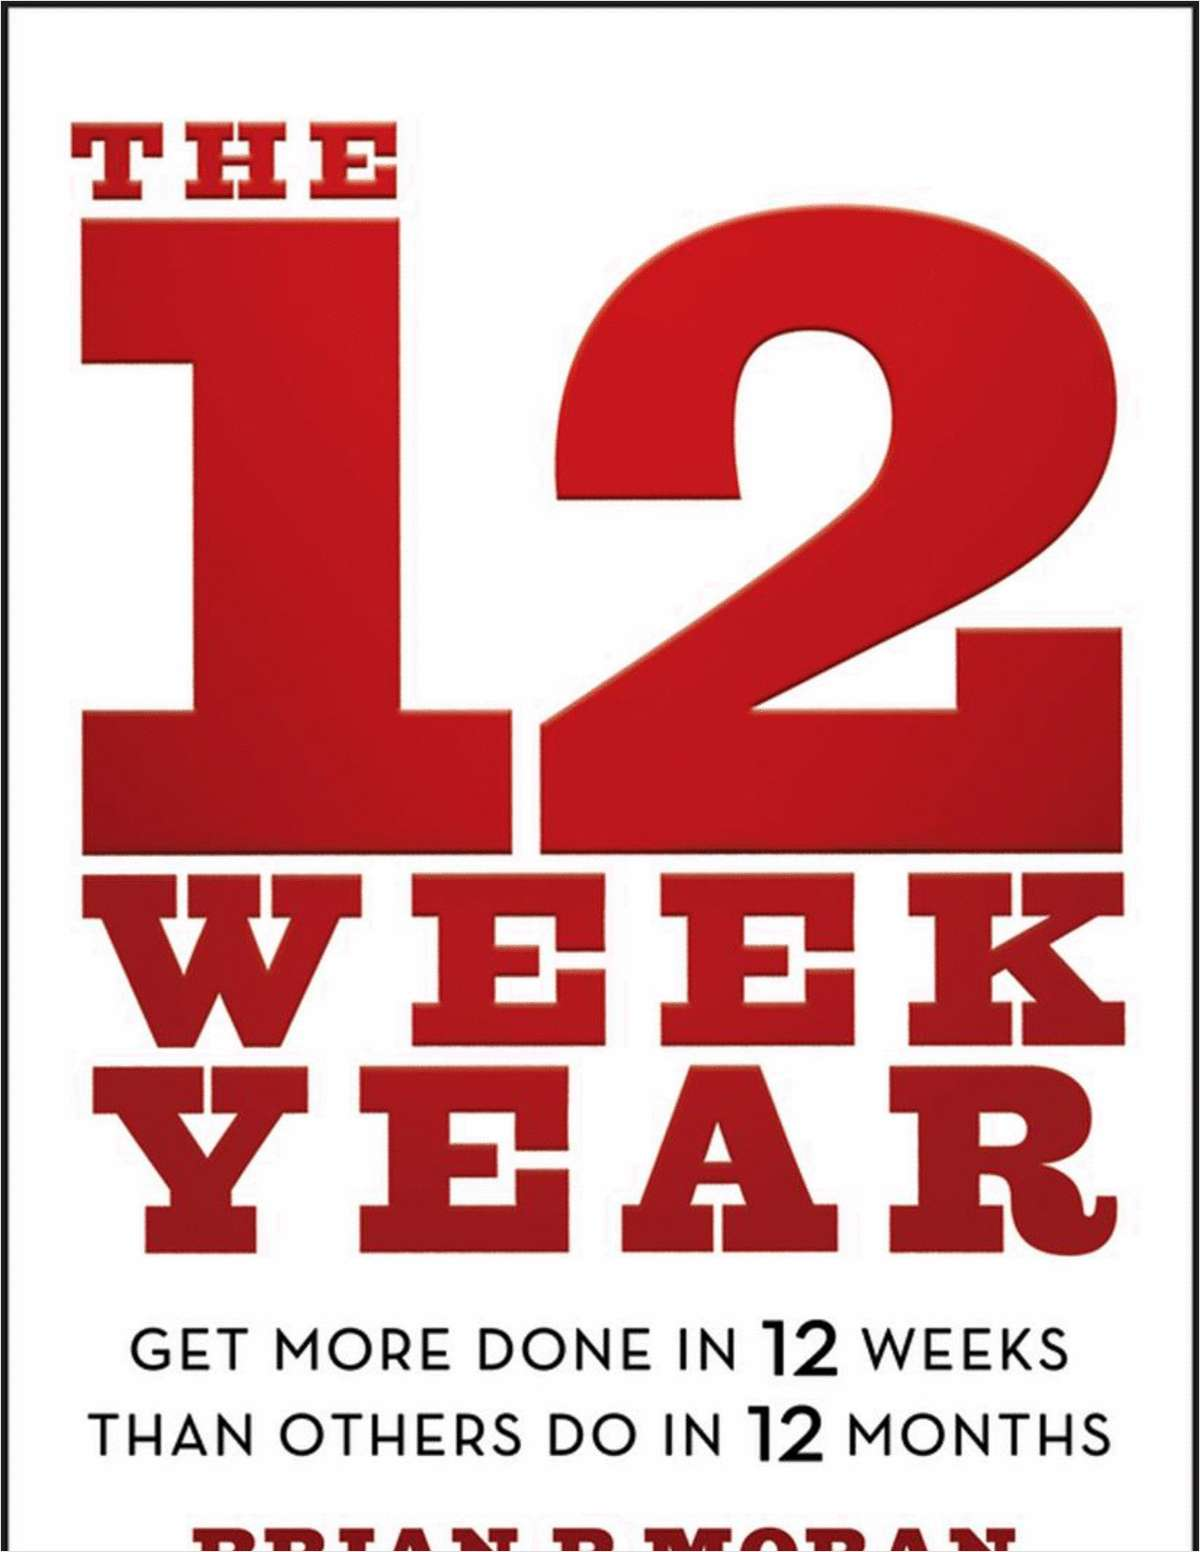 The 12 Week Year Get More Done In 12 Weeks Than Others Do